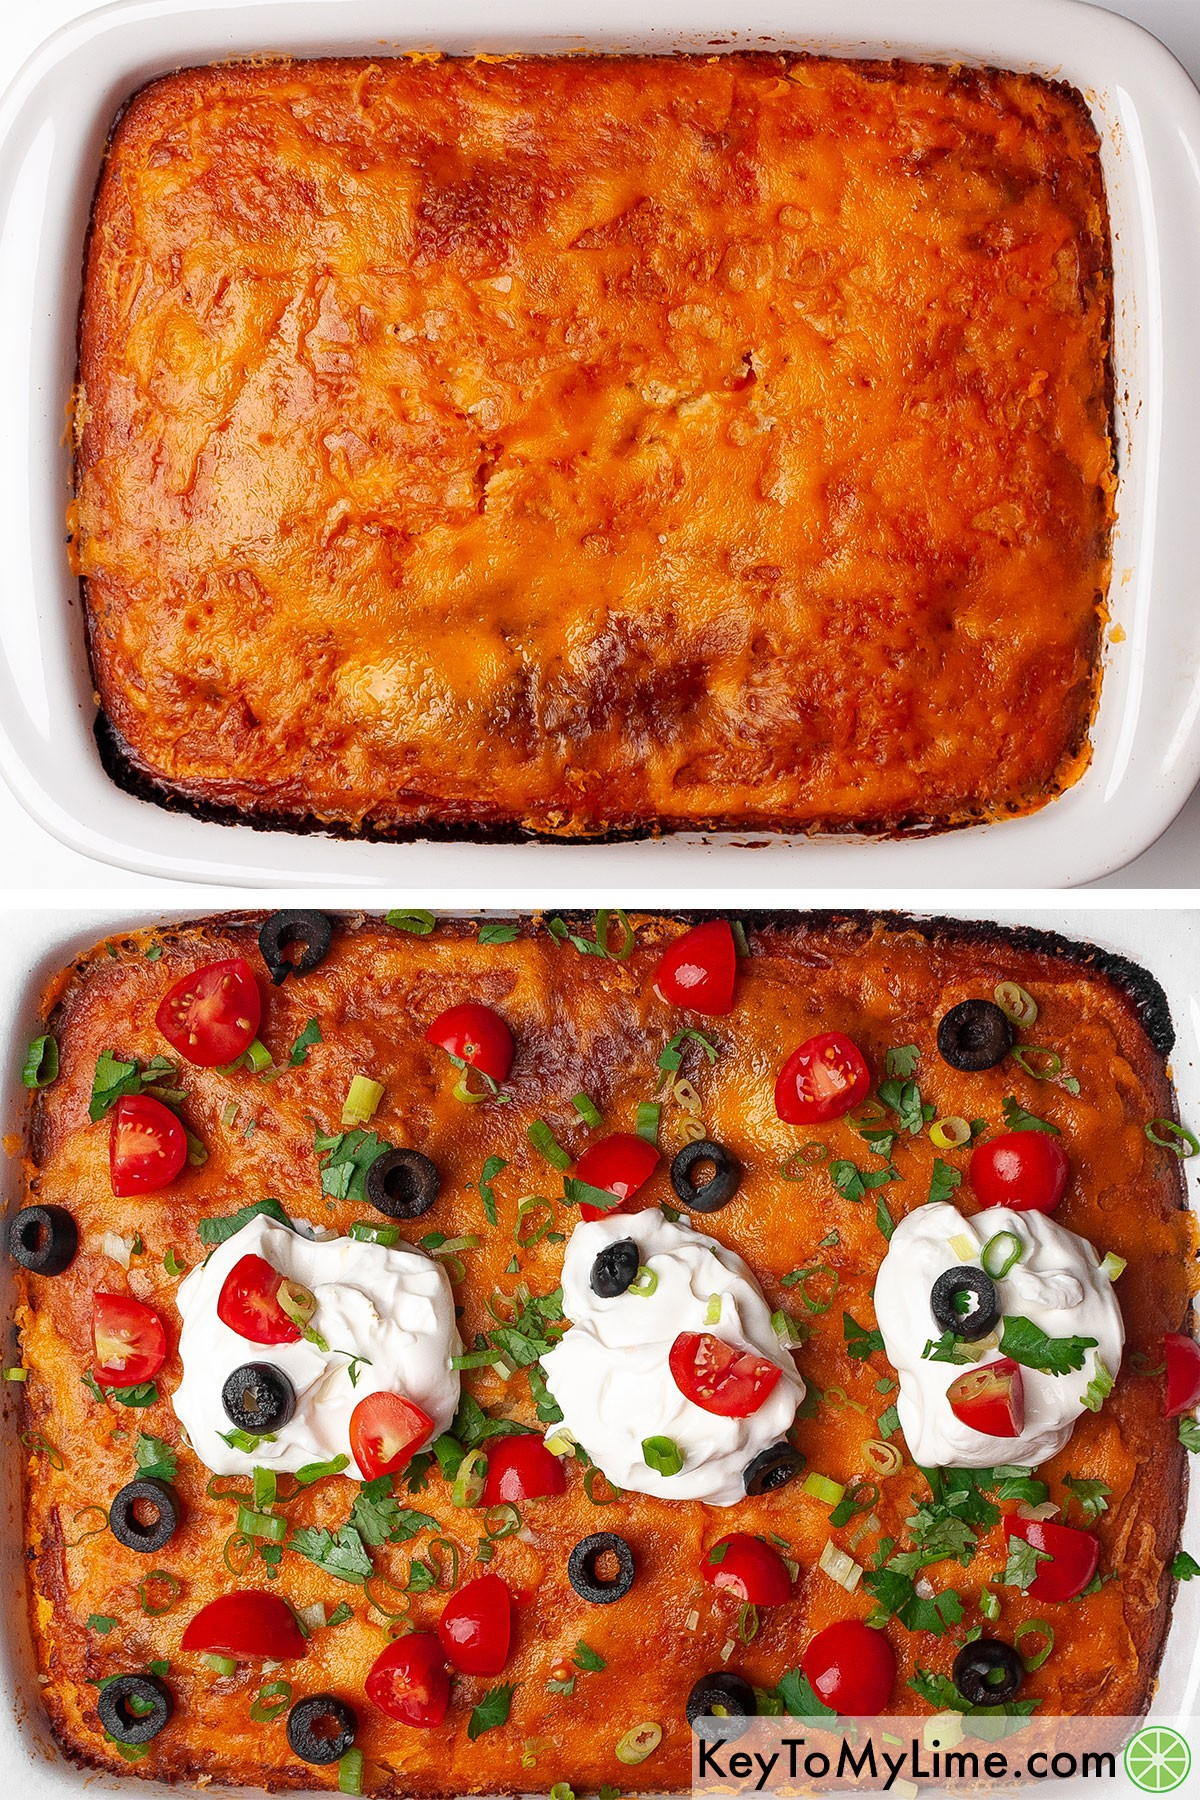 Topping Mexican cornbread casserole with taco toppings.